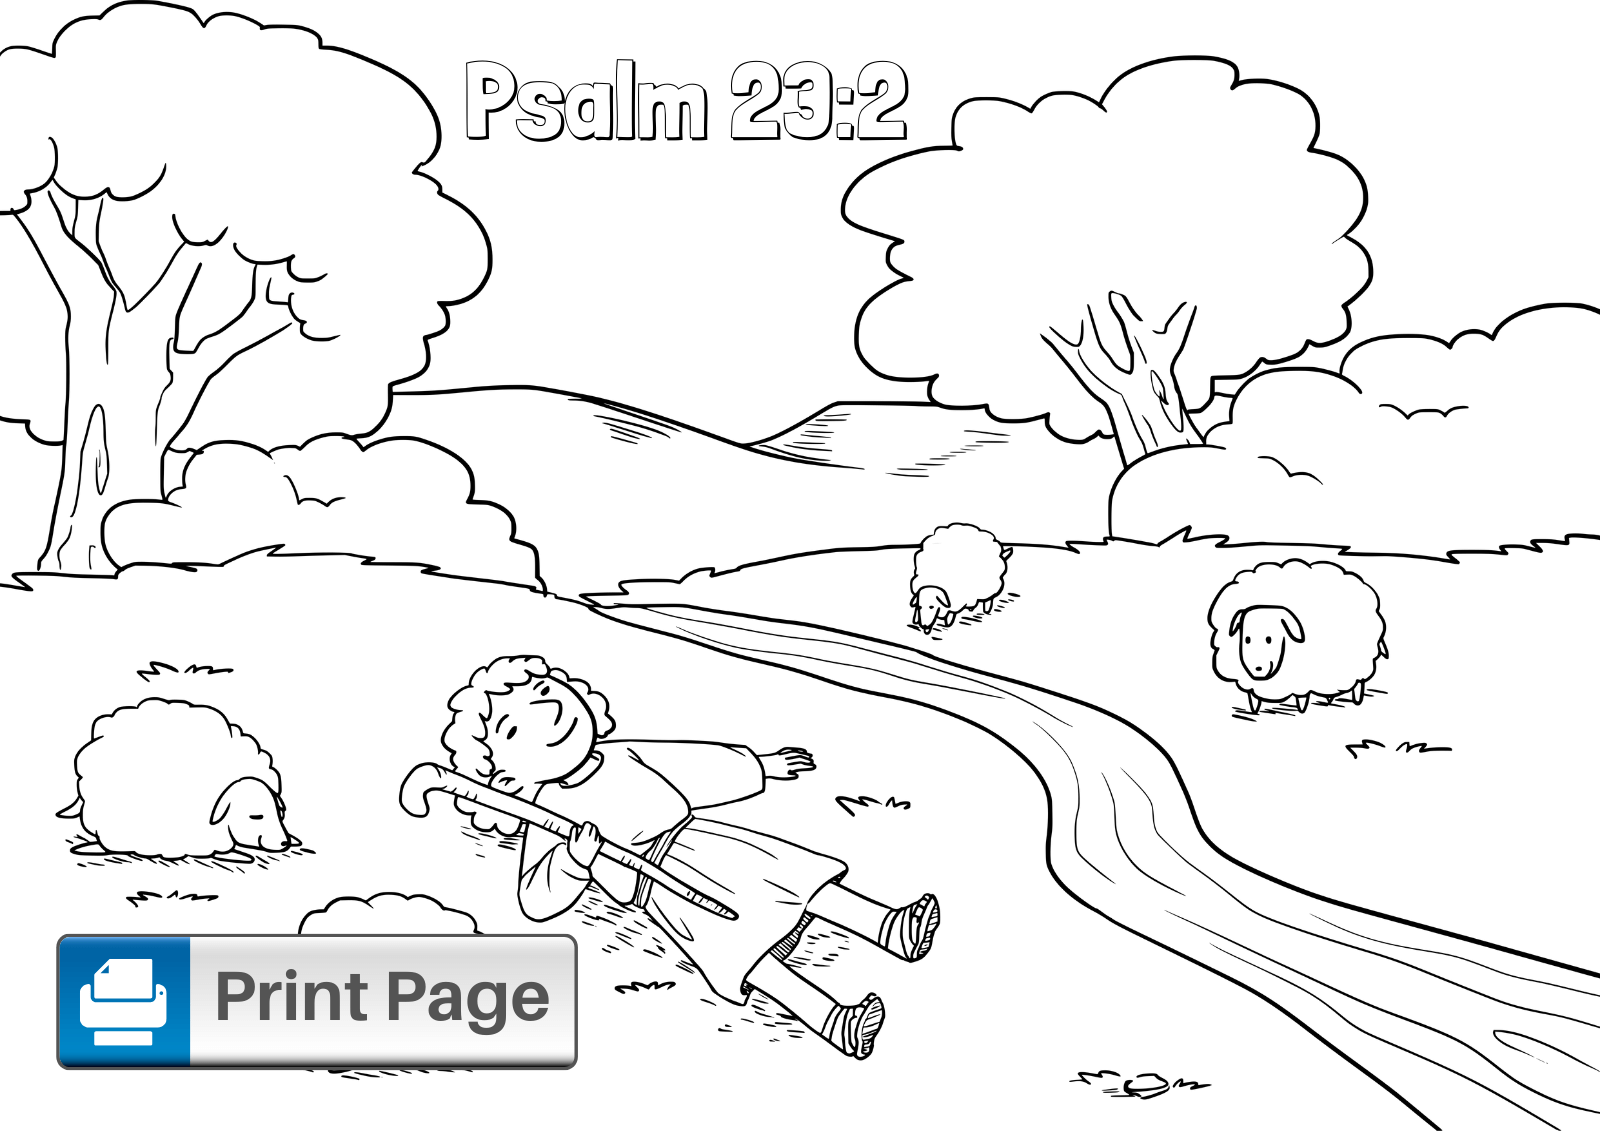 Free Printable Psalm 23 Coloring Pages For Kids Connectus